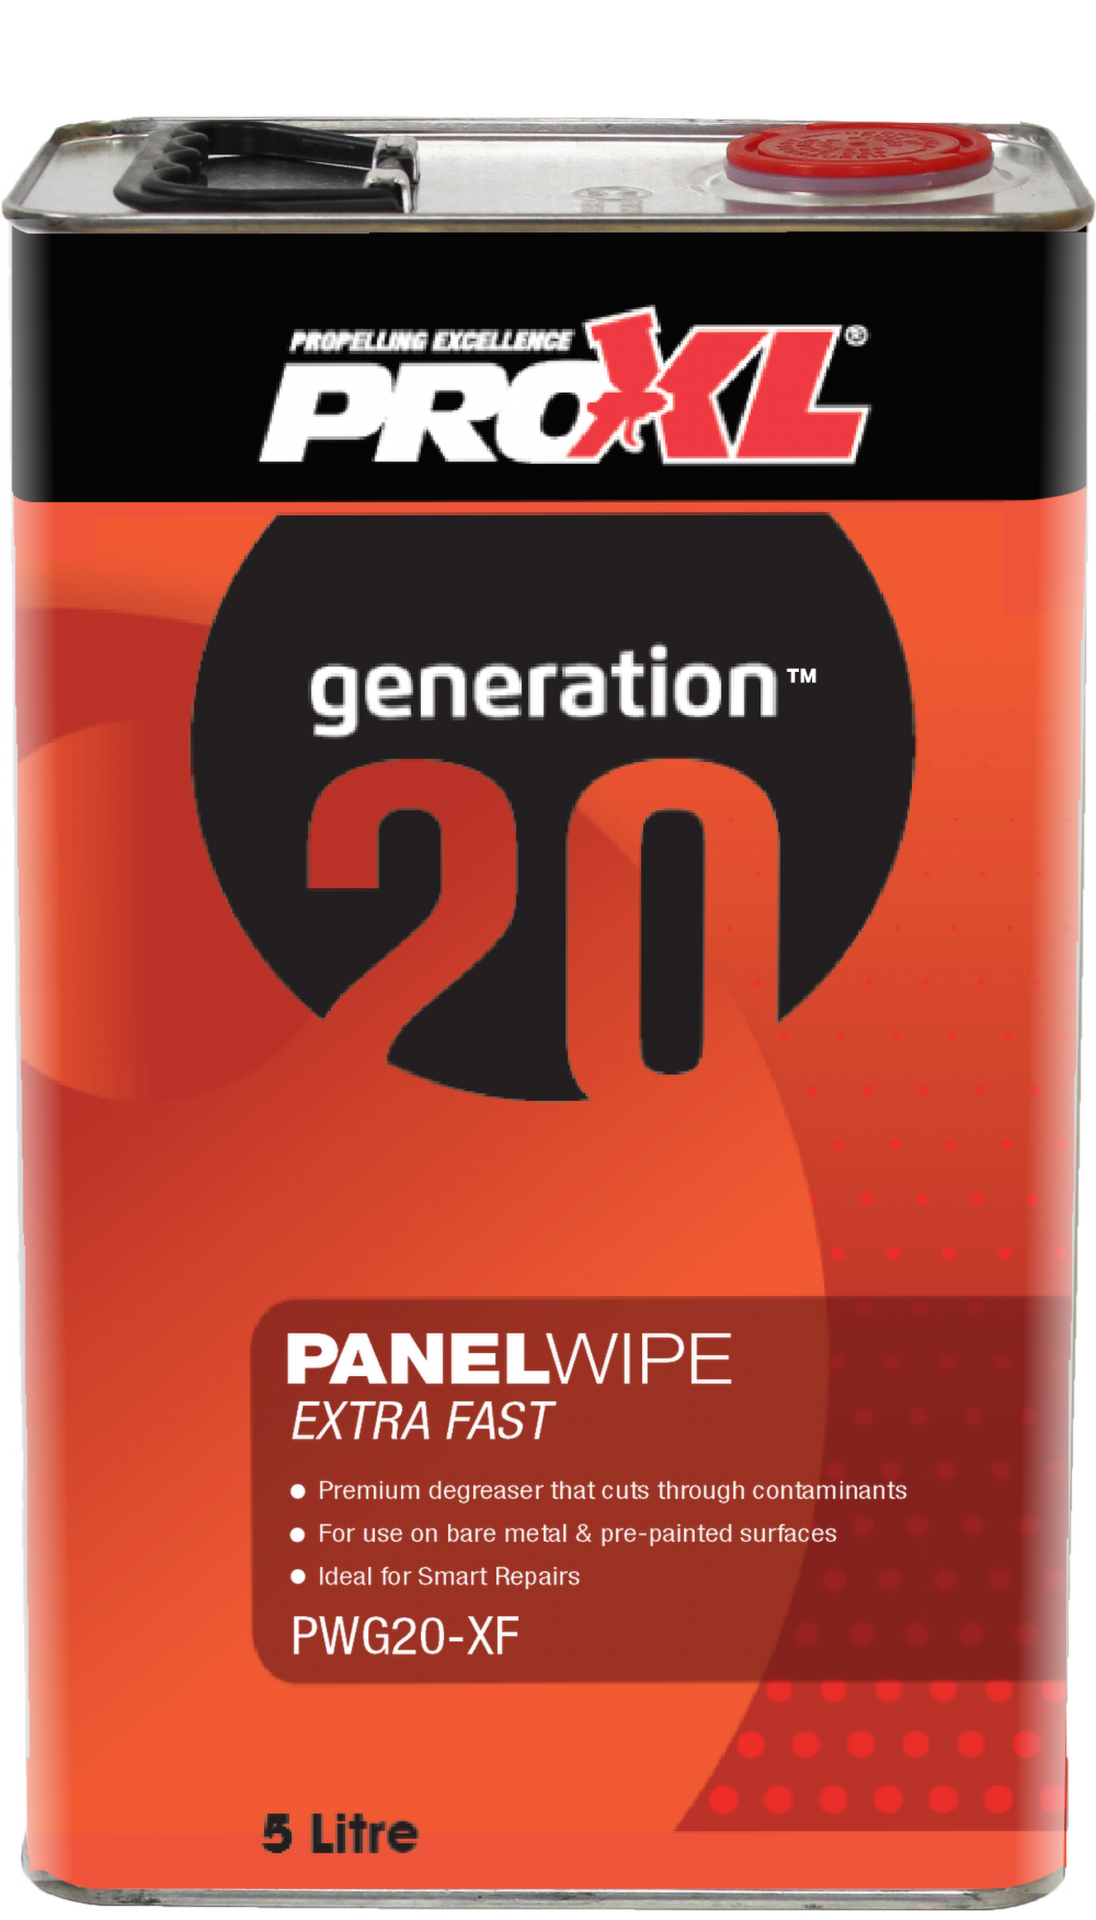 PanelWipe Degreaser- Extra Fast (5lt) Product Image